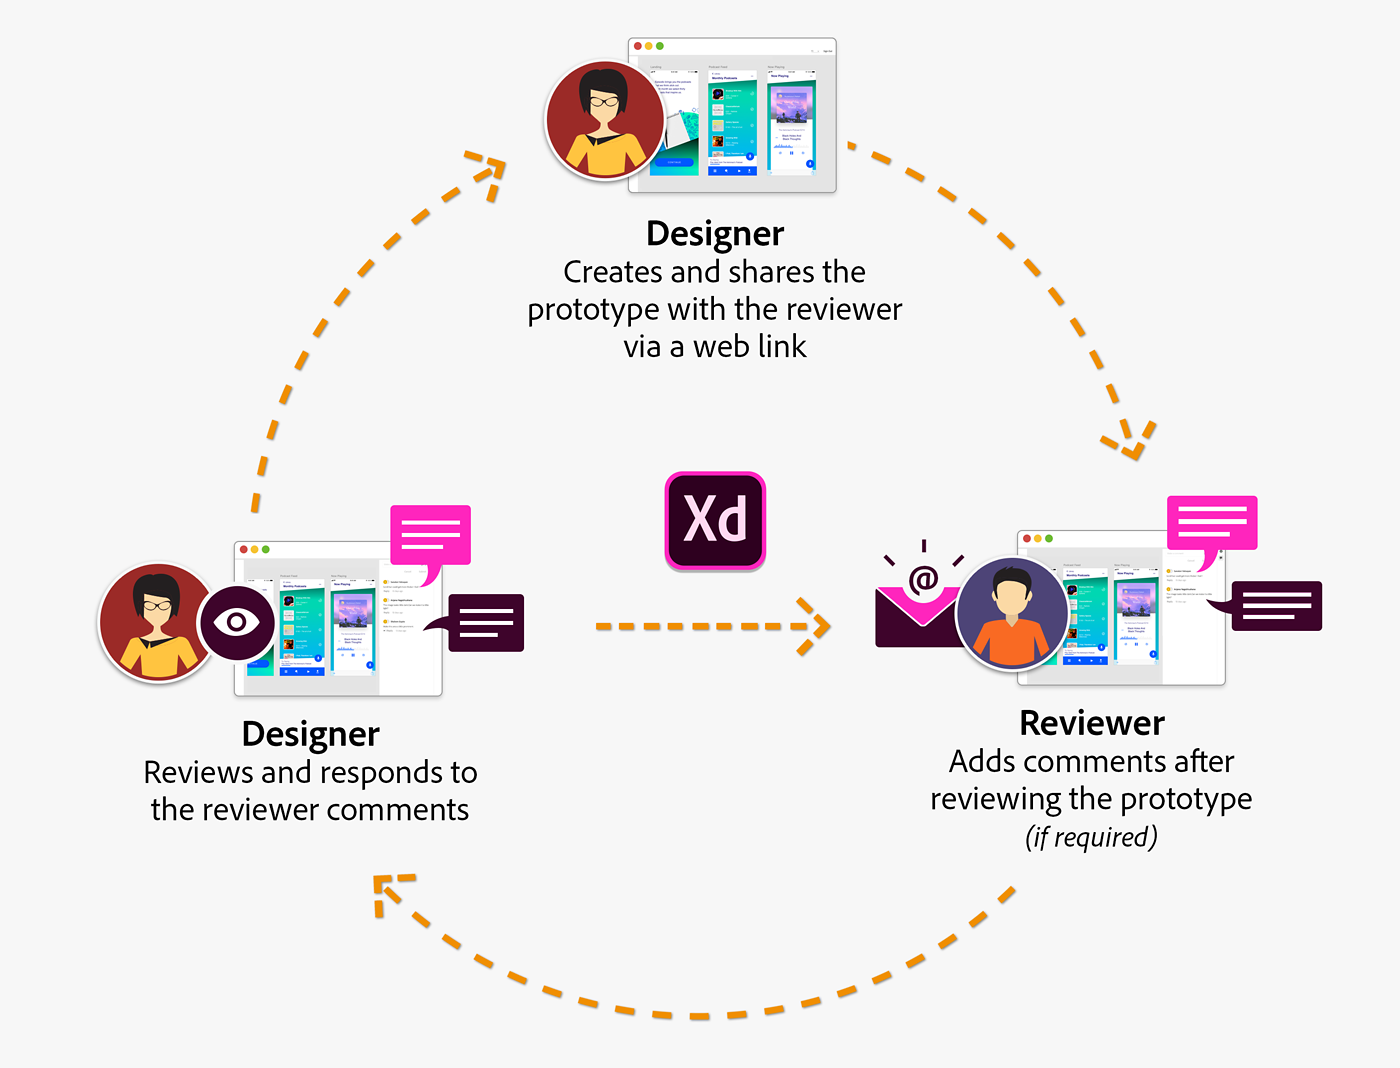 Designer-Reviewer workflow